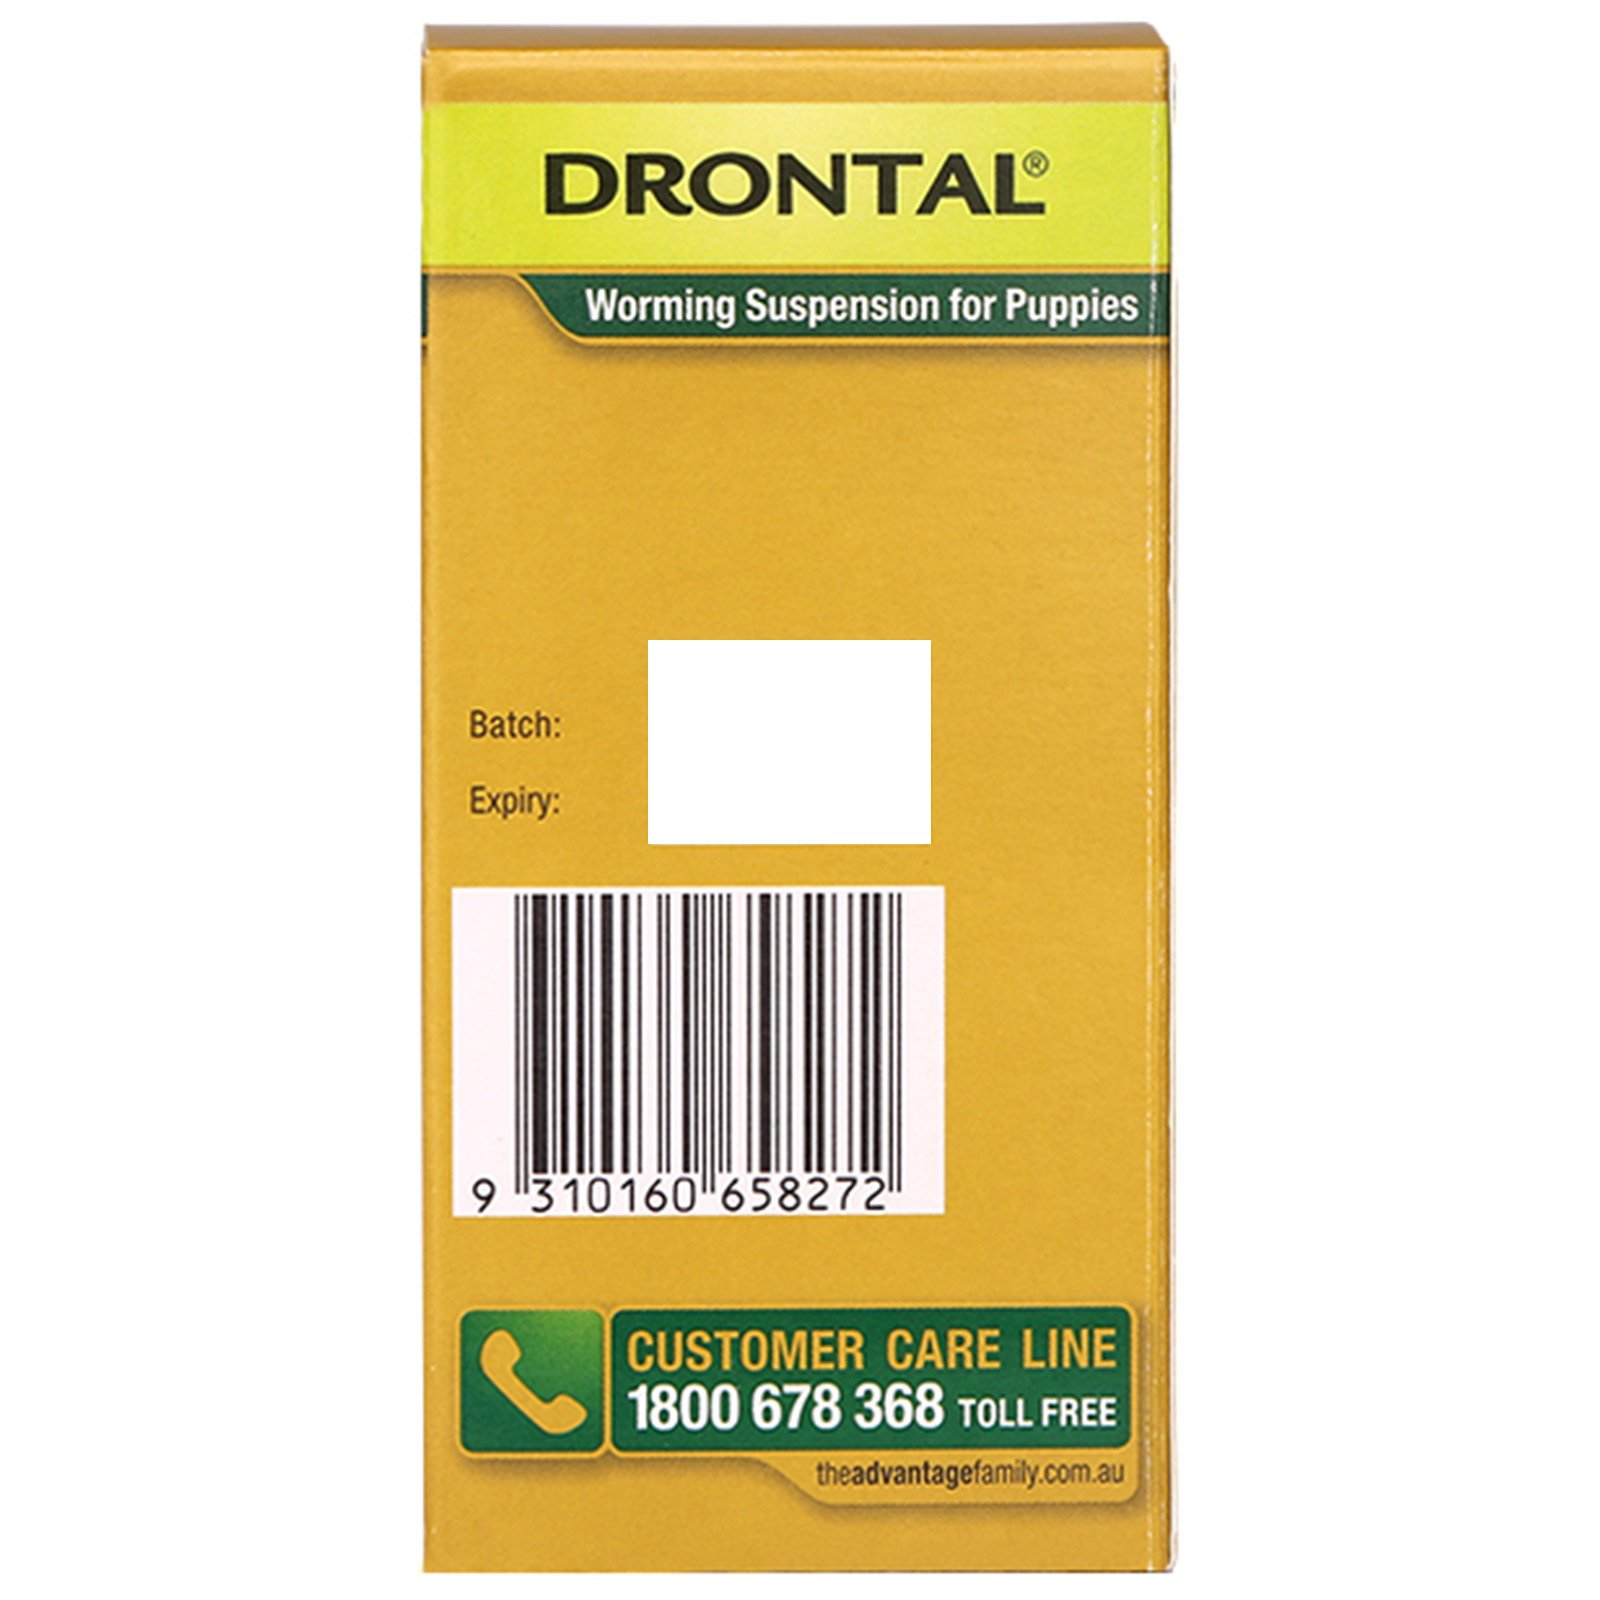 drontal-drontal-wormers-for-puppies-back.jpg